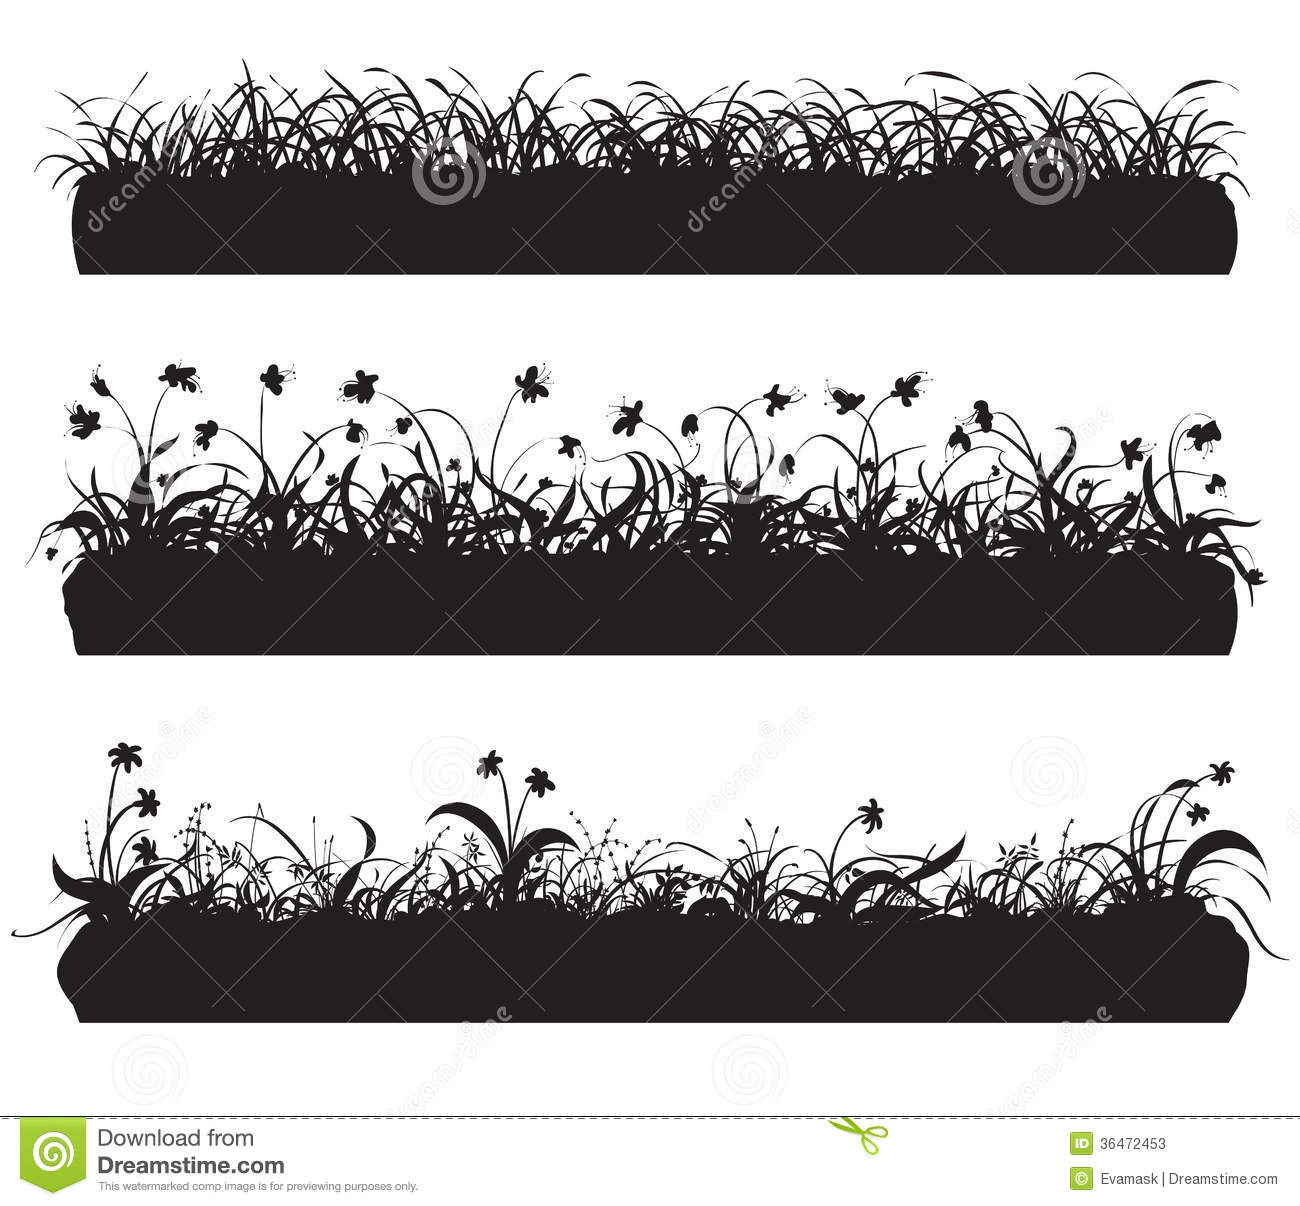 Displaying 18> Images For - Marsh Grass Silhouette...